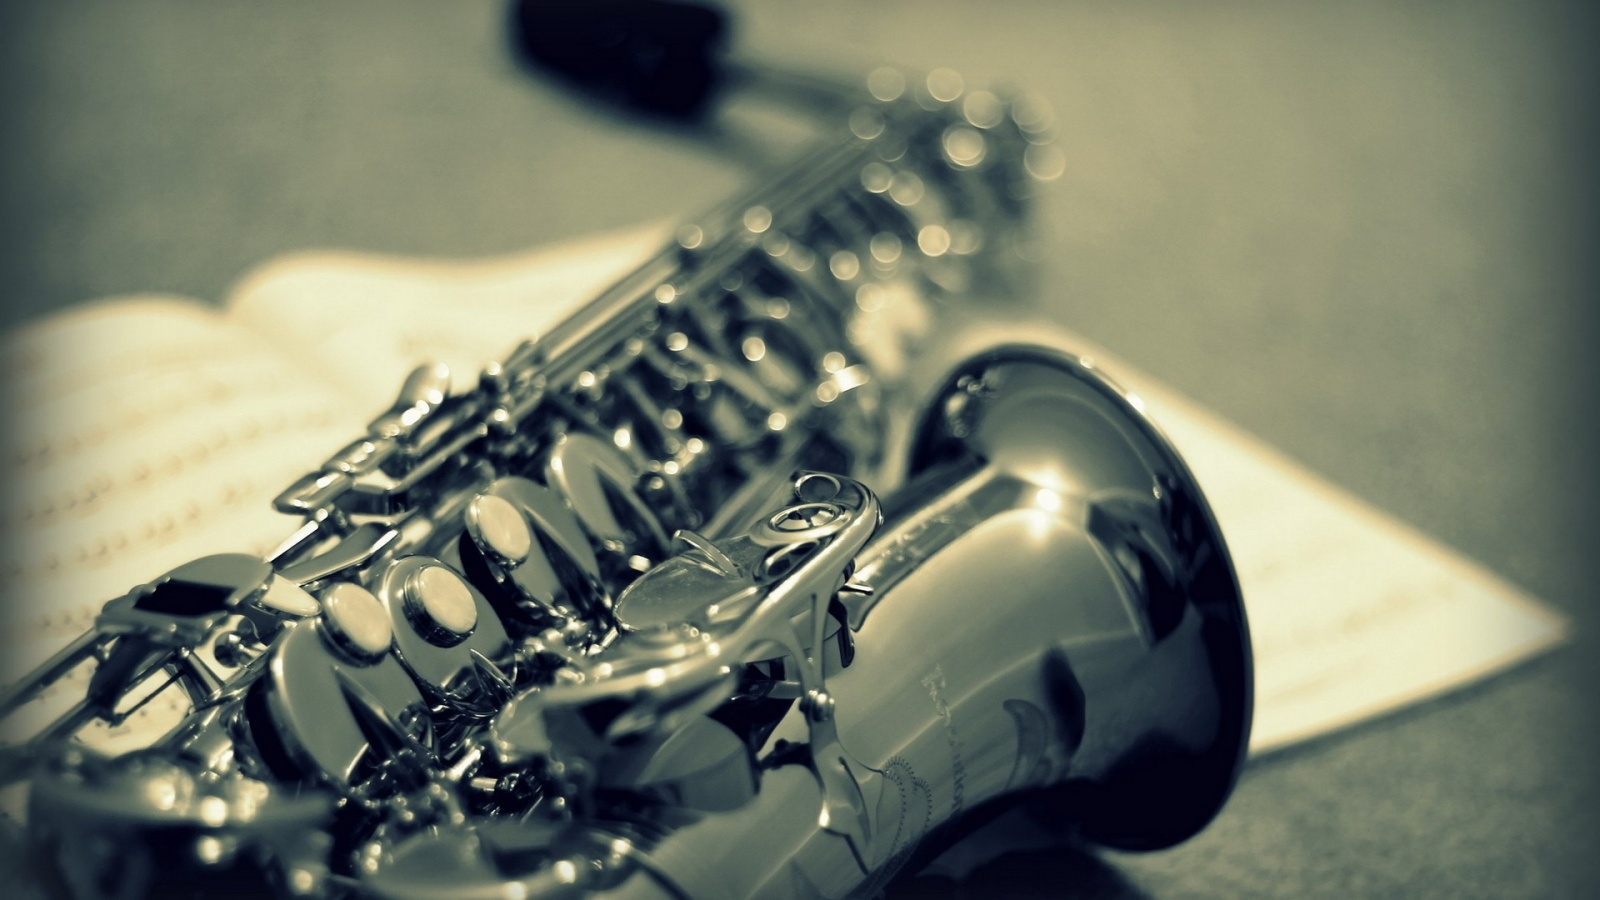 saxophone photography wallpaper 63176